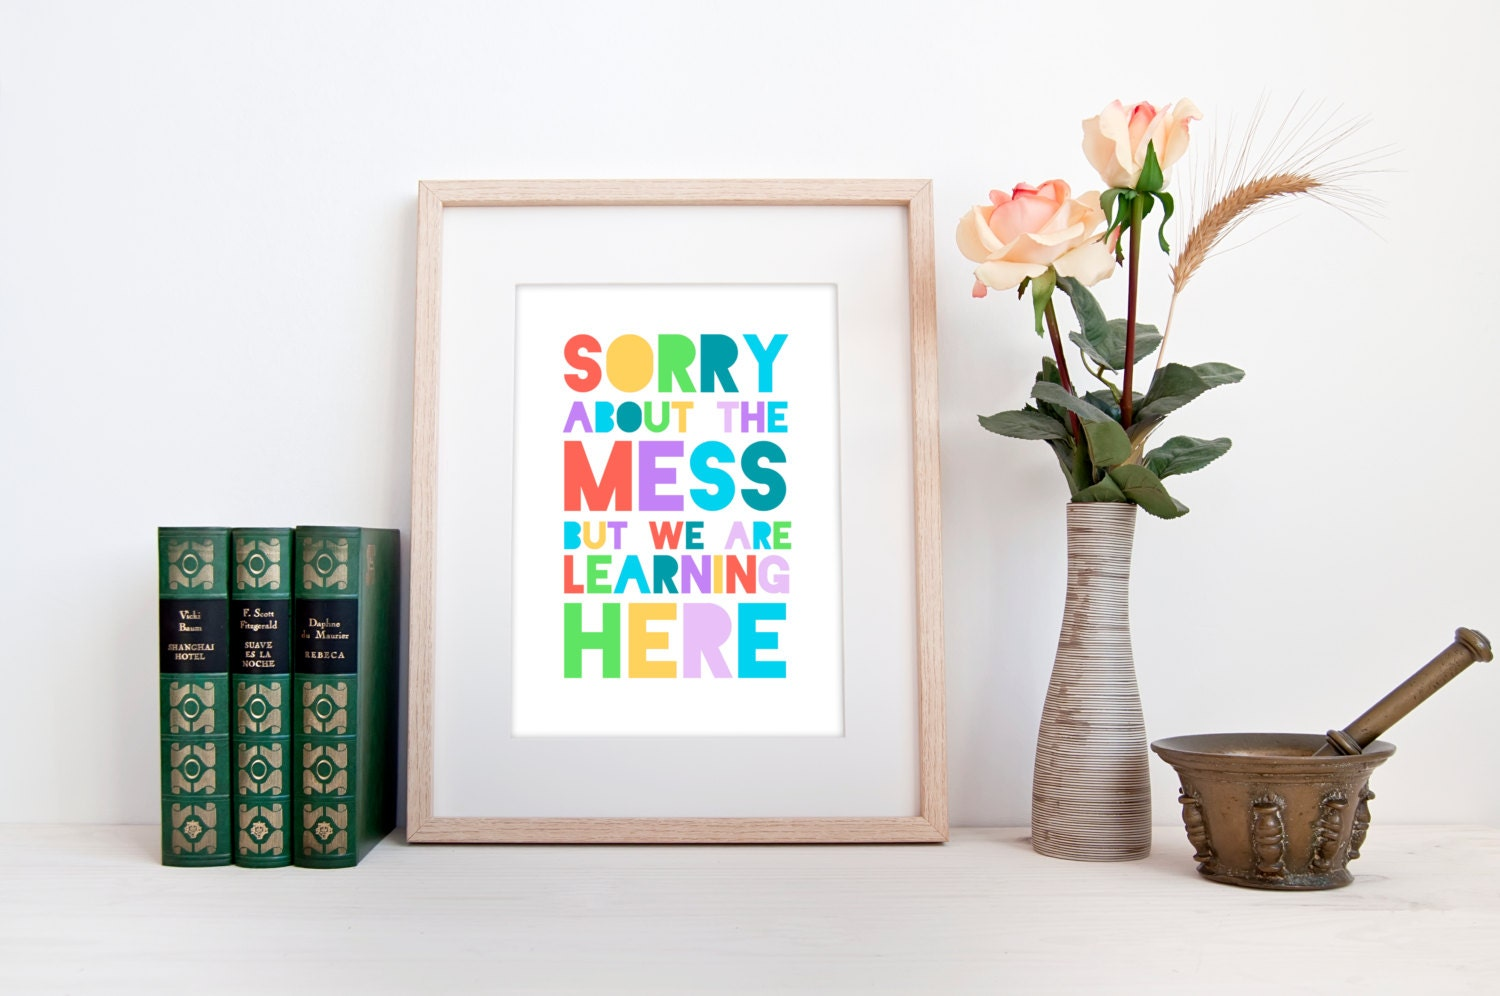 Classroom Decor Download : Classroom decor instant download sorry about the mess but we